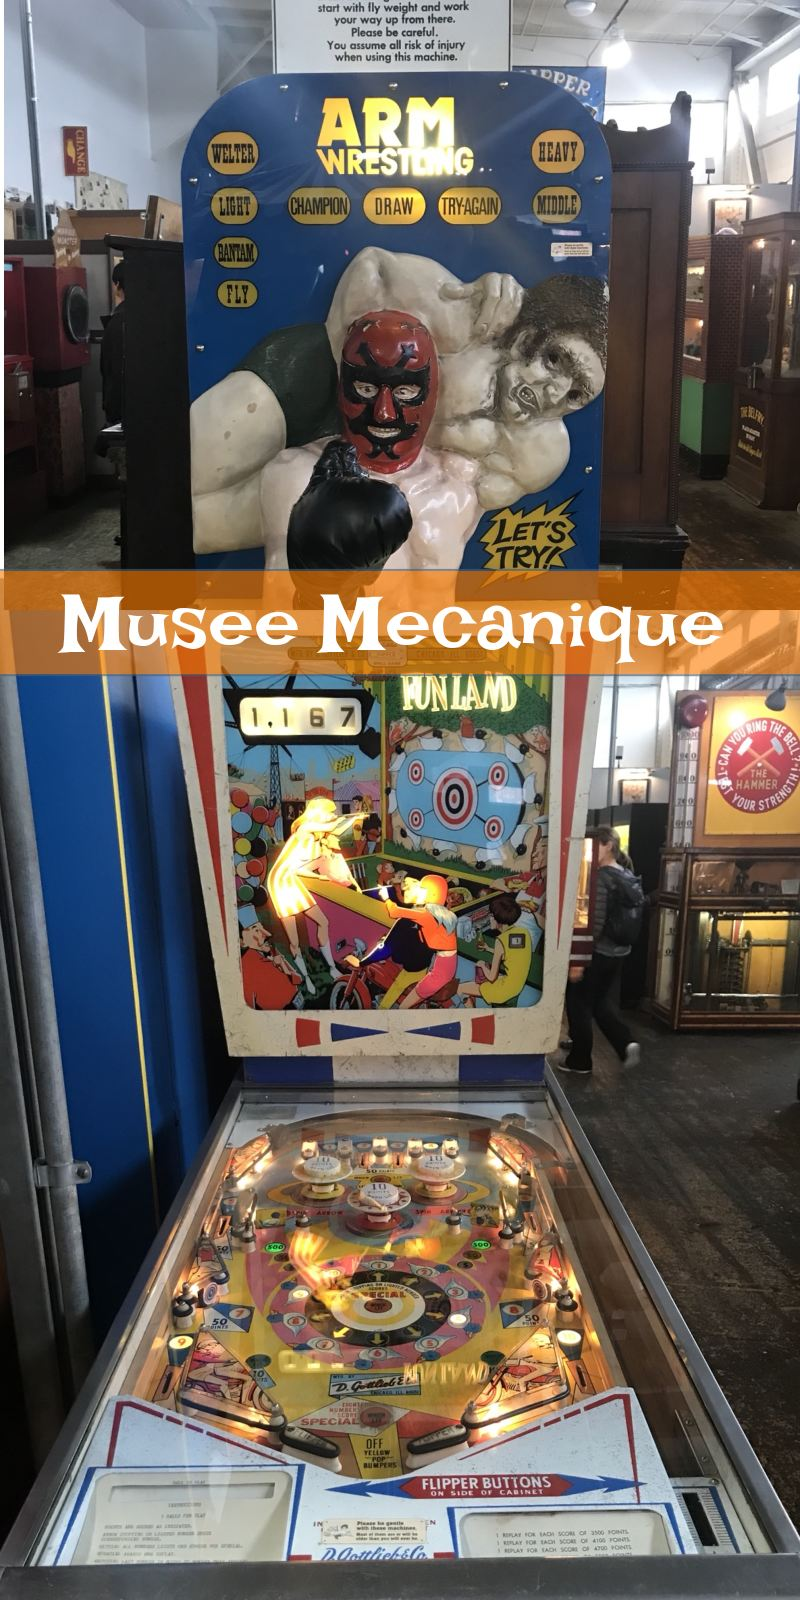 Musee Mecanique pinball and arm wrestling machine